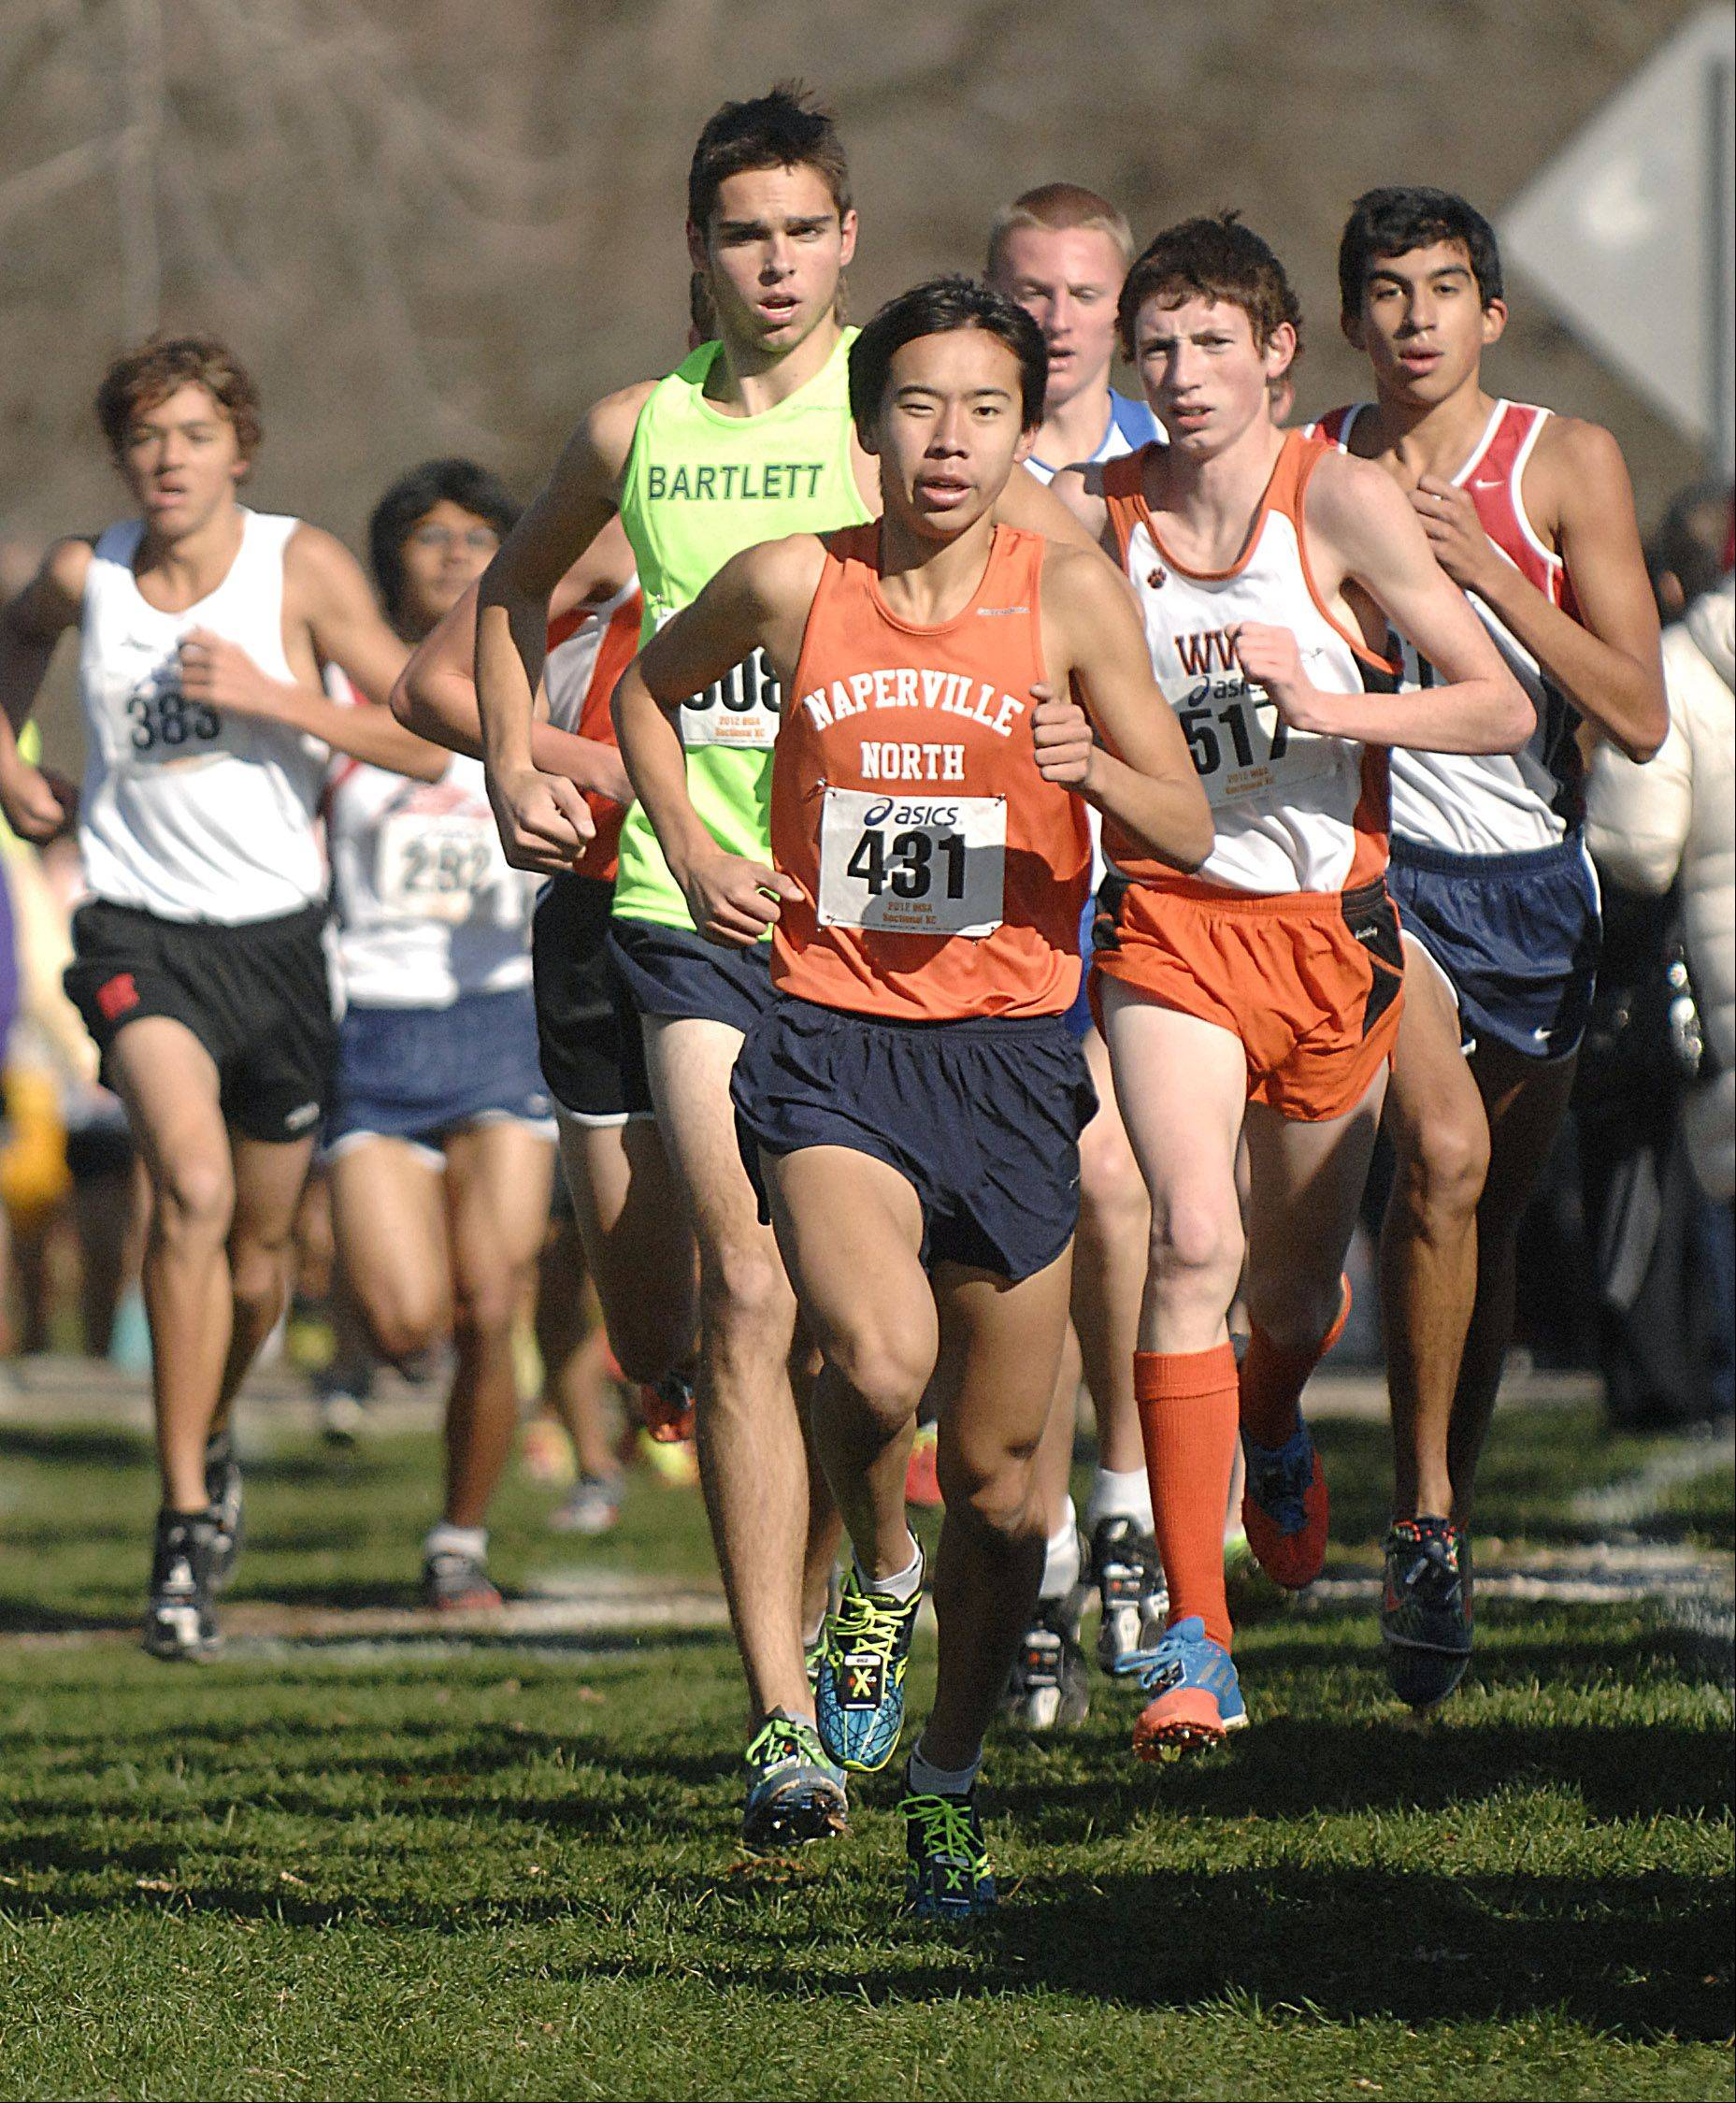 Naperville North's Jimmy Qiao leads the pack with Bartlett's Connor Rachford behind him near the mile and half mark in the St. Charles East cross country sectional at LeRoy Oakes in St. Charles on Saturday, October 27.